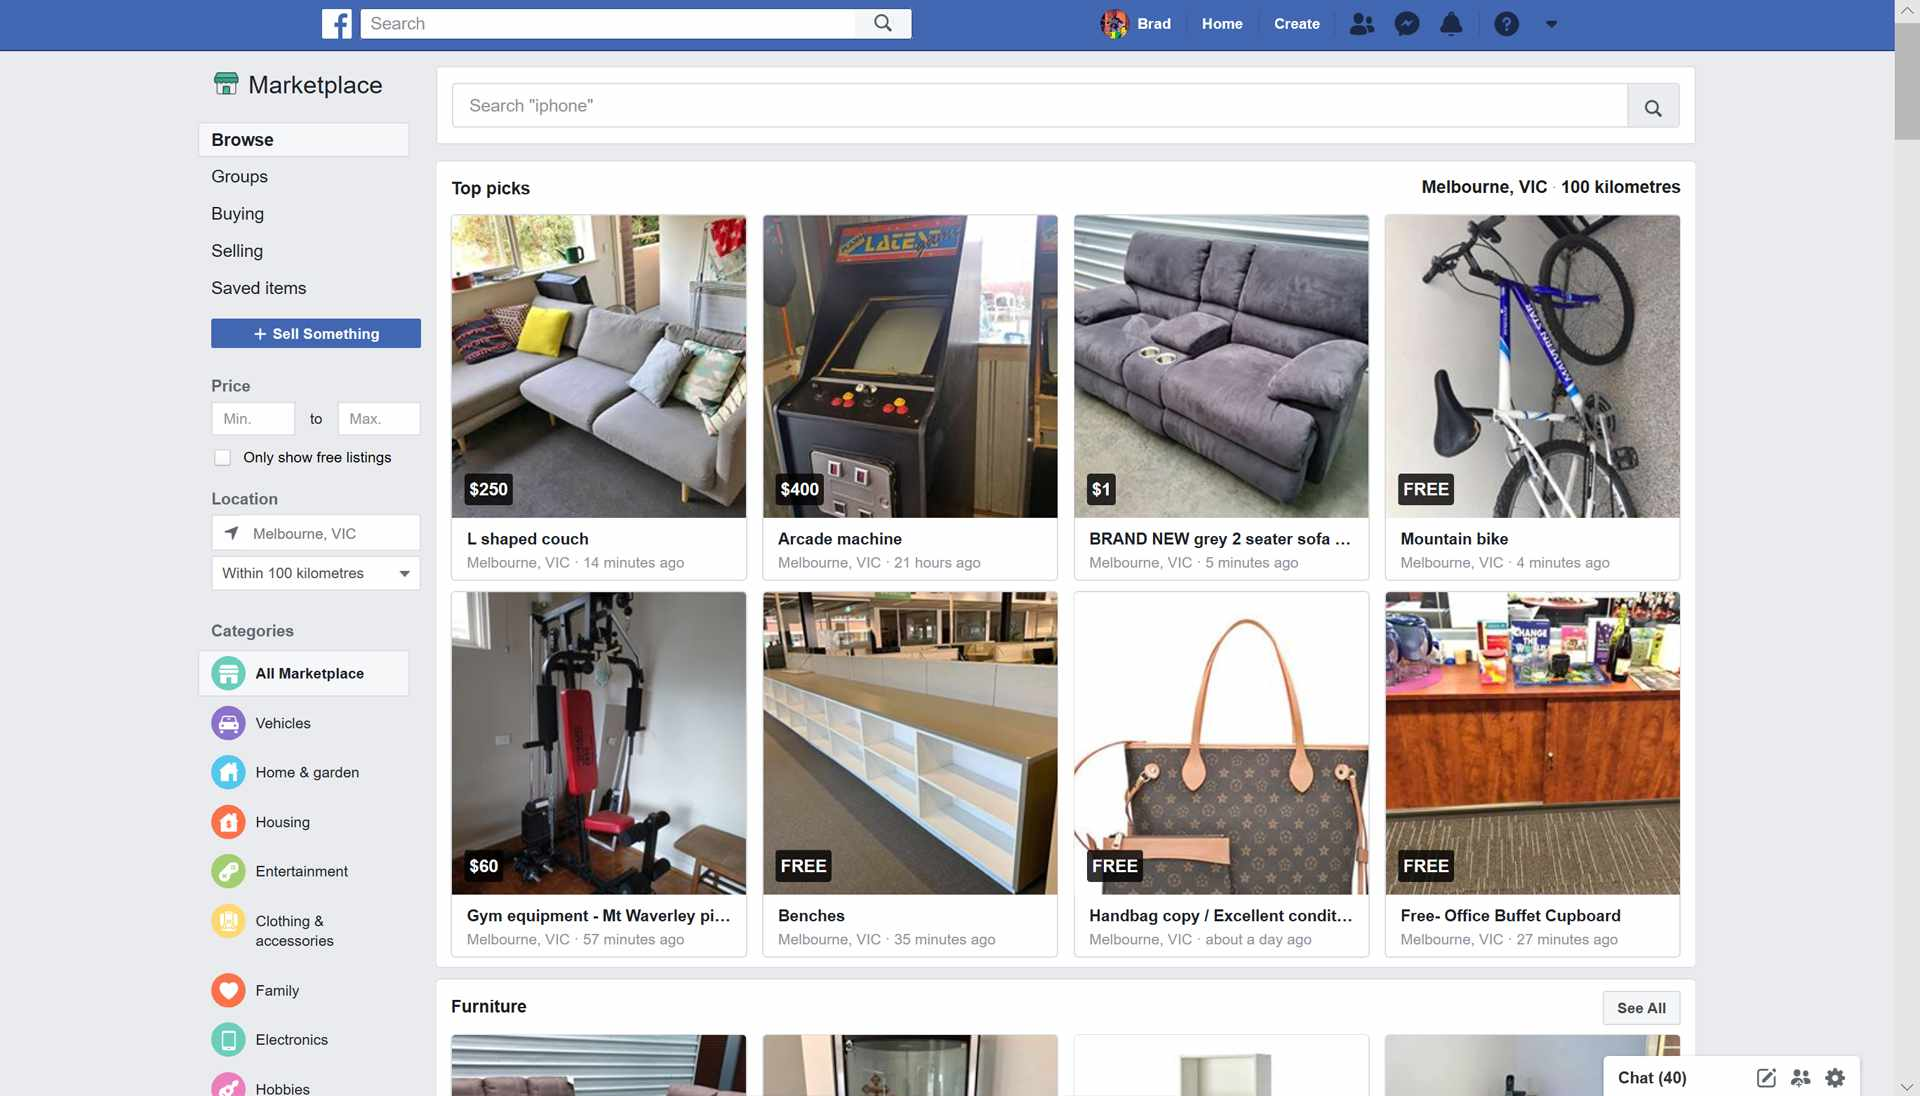 Tips For Searching And Buying From Facebook Marketplace